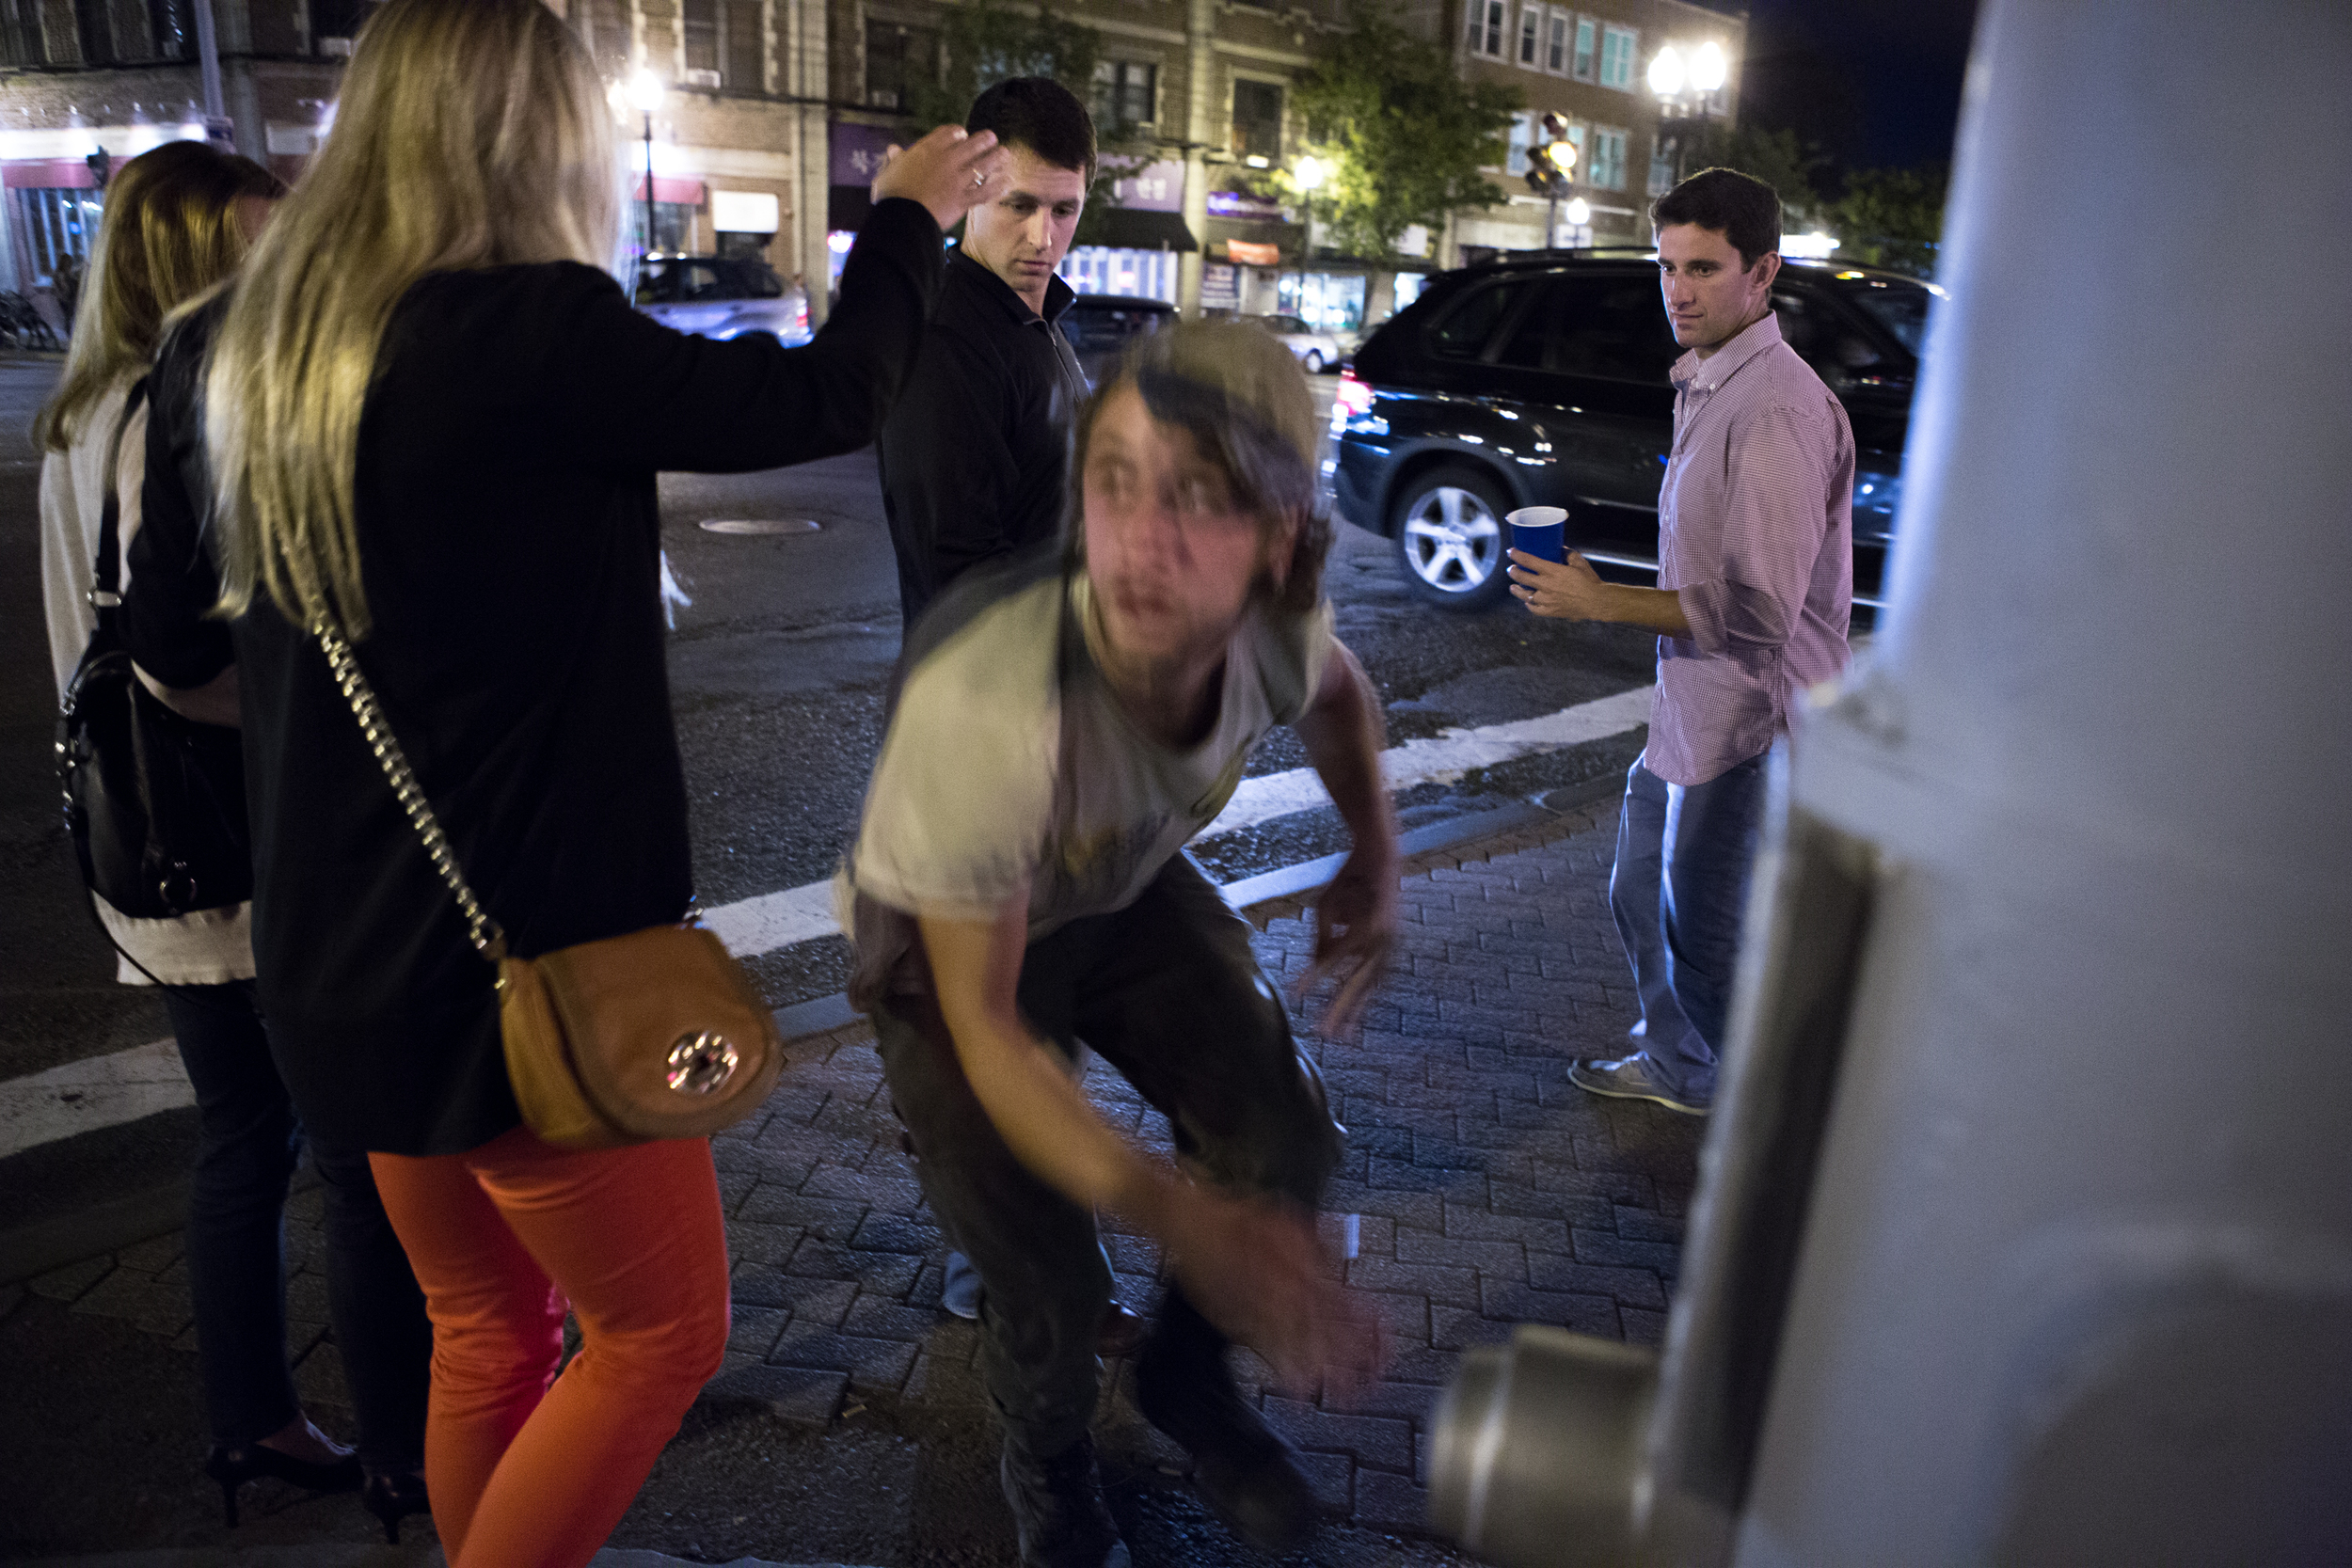 """A 20-year-old homeless man who asked to be identified as Anchor leaps upward in a crowd of pedestrians, scaring them, after crawling on the ground to get in position outside Blanchard's liquor store in Allston. """"People give us dirty looks but at least I don't have to go to a job,"""" Anchor said. Photo credit: Justin Saglio"""